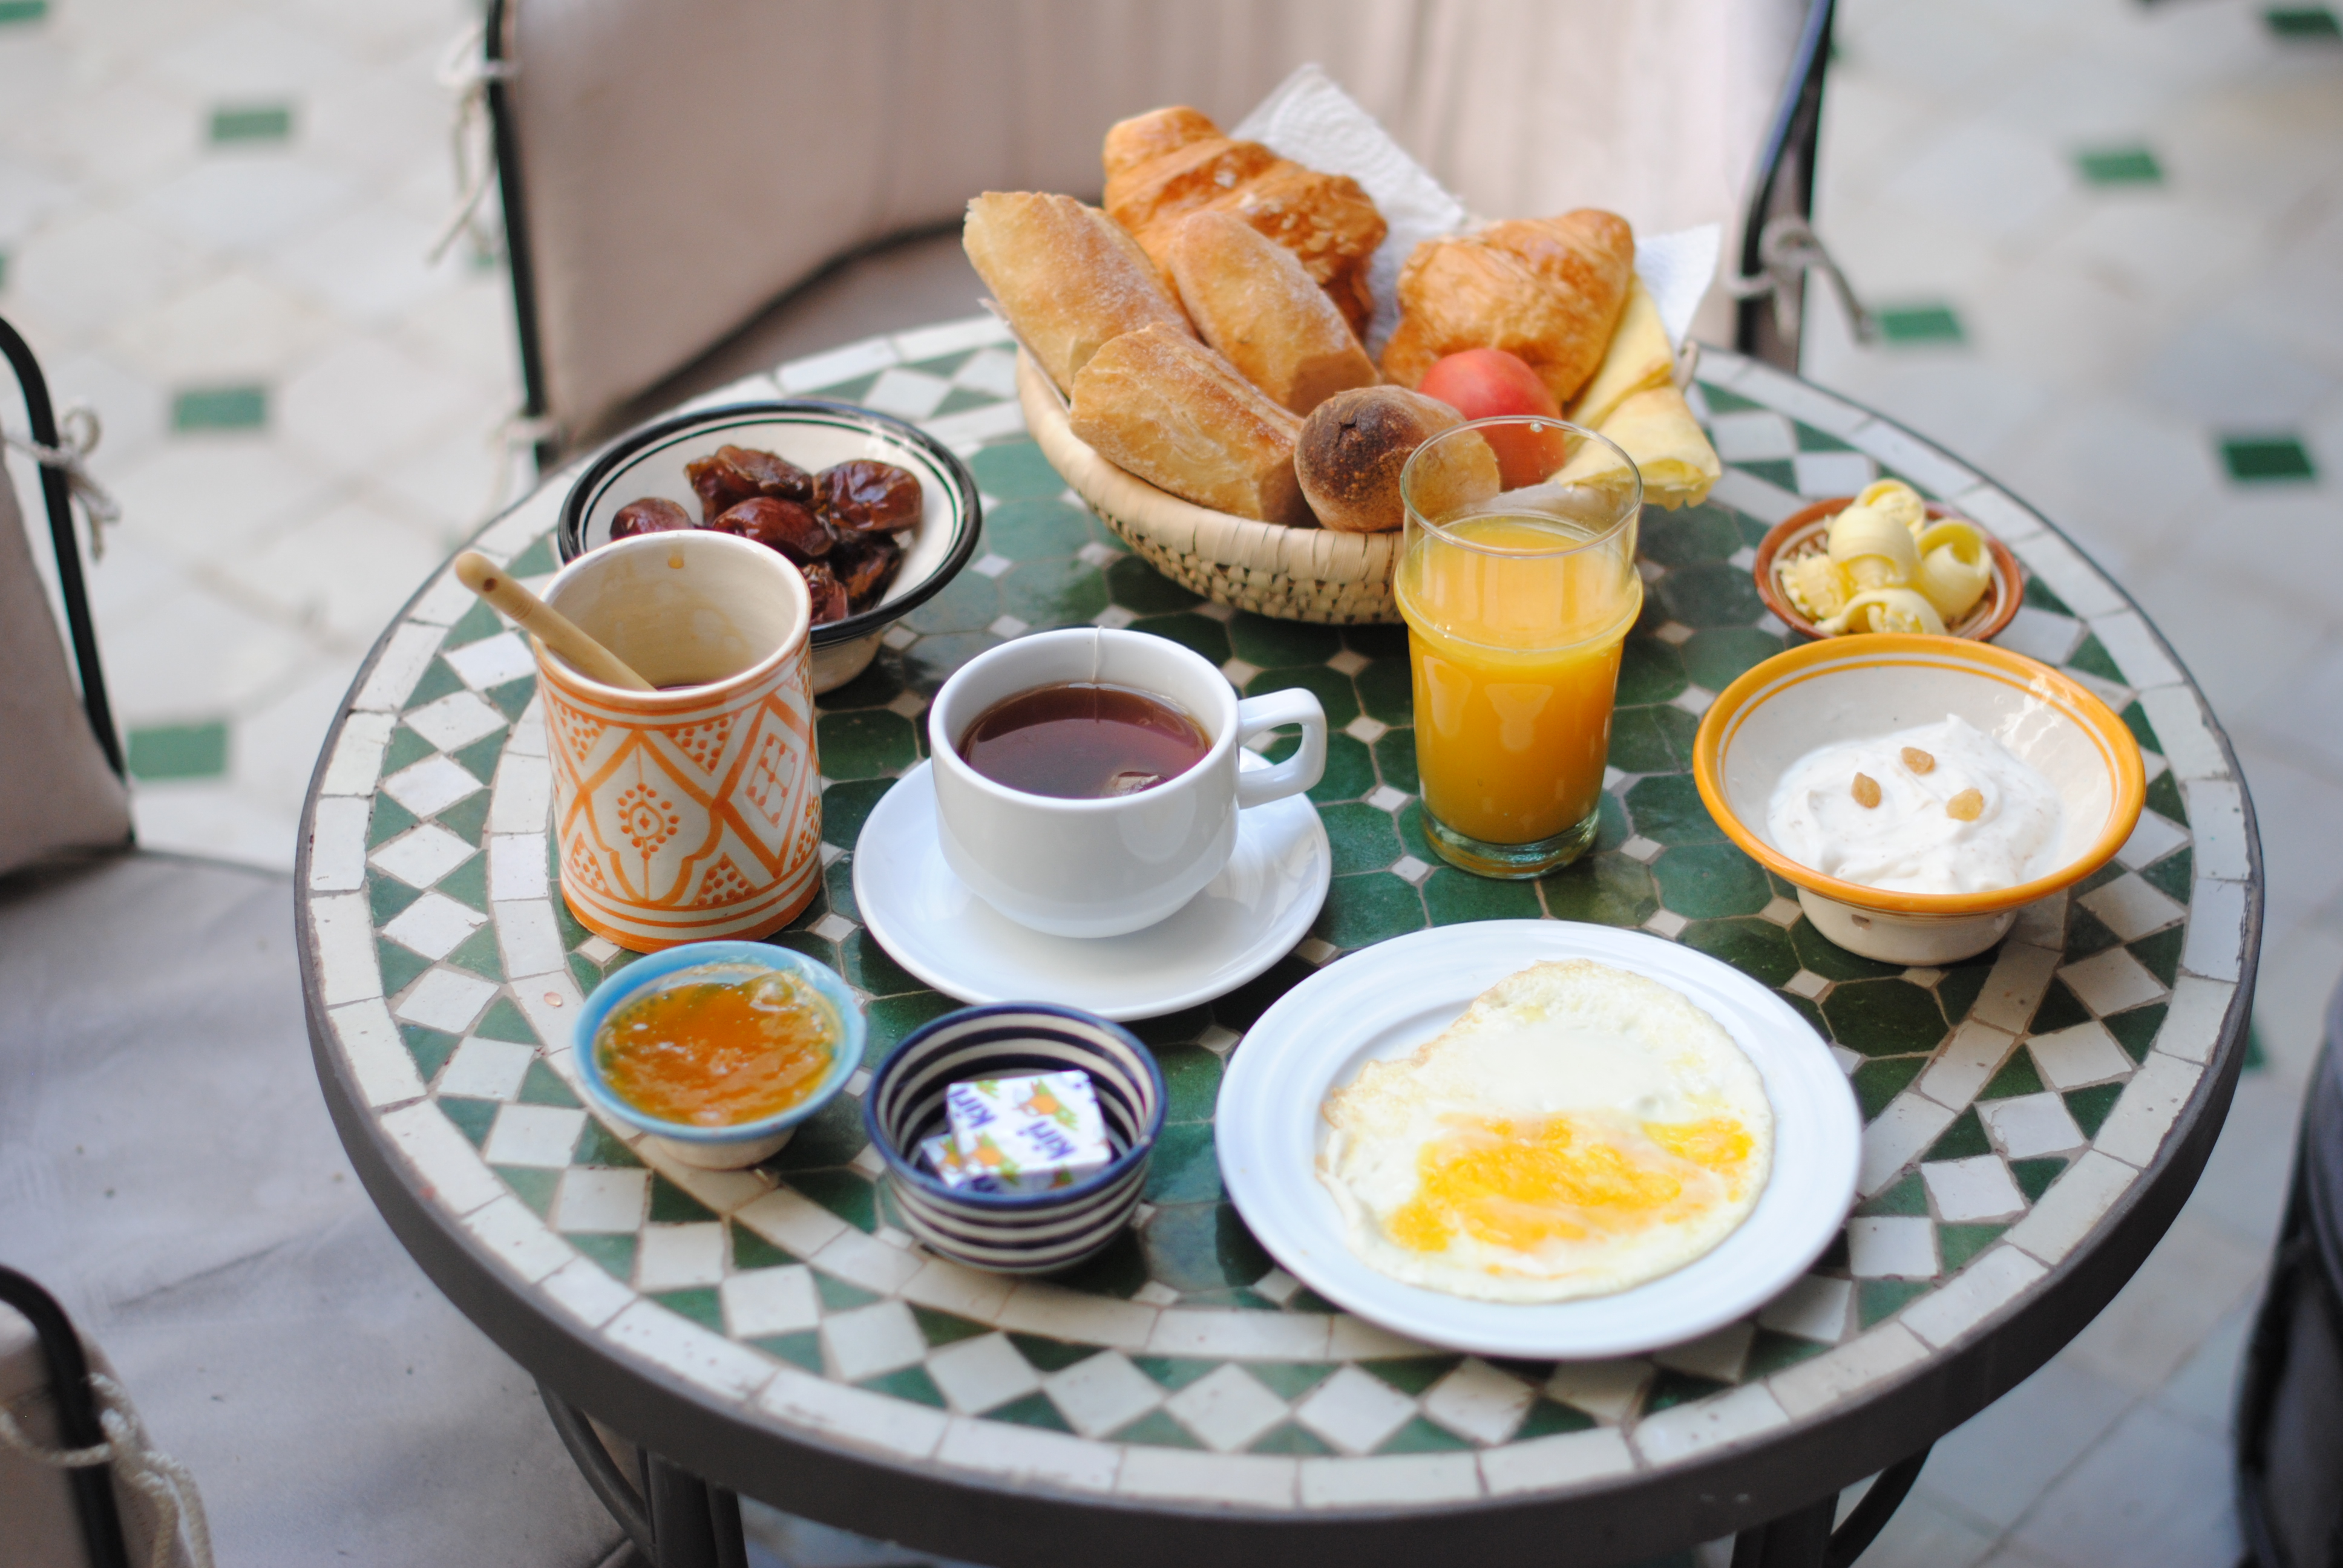 Le Riad Yasmine Breakfast Marrakech- Kubilay Sakarya